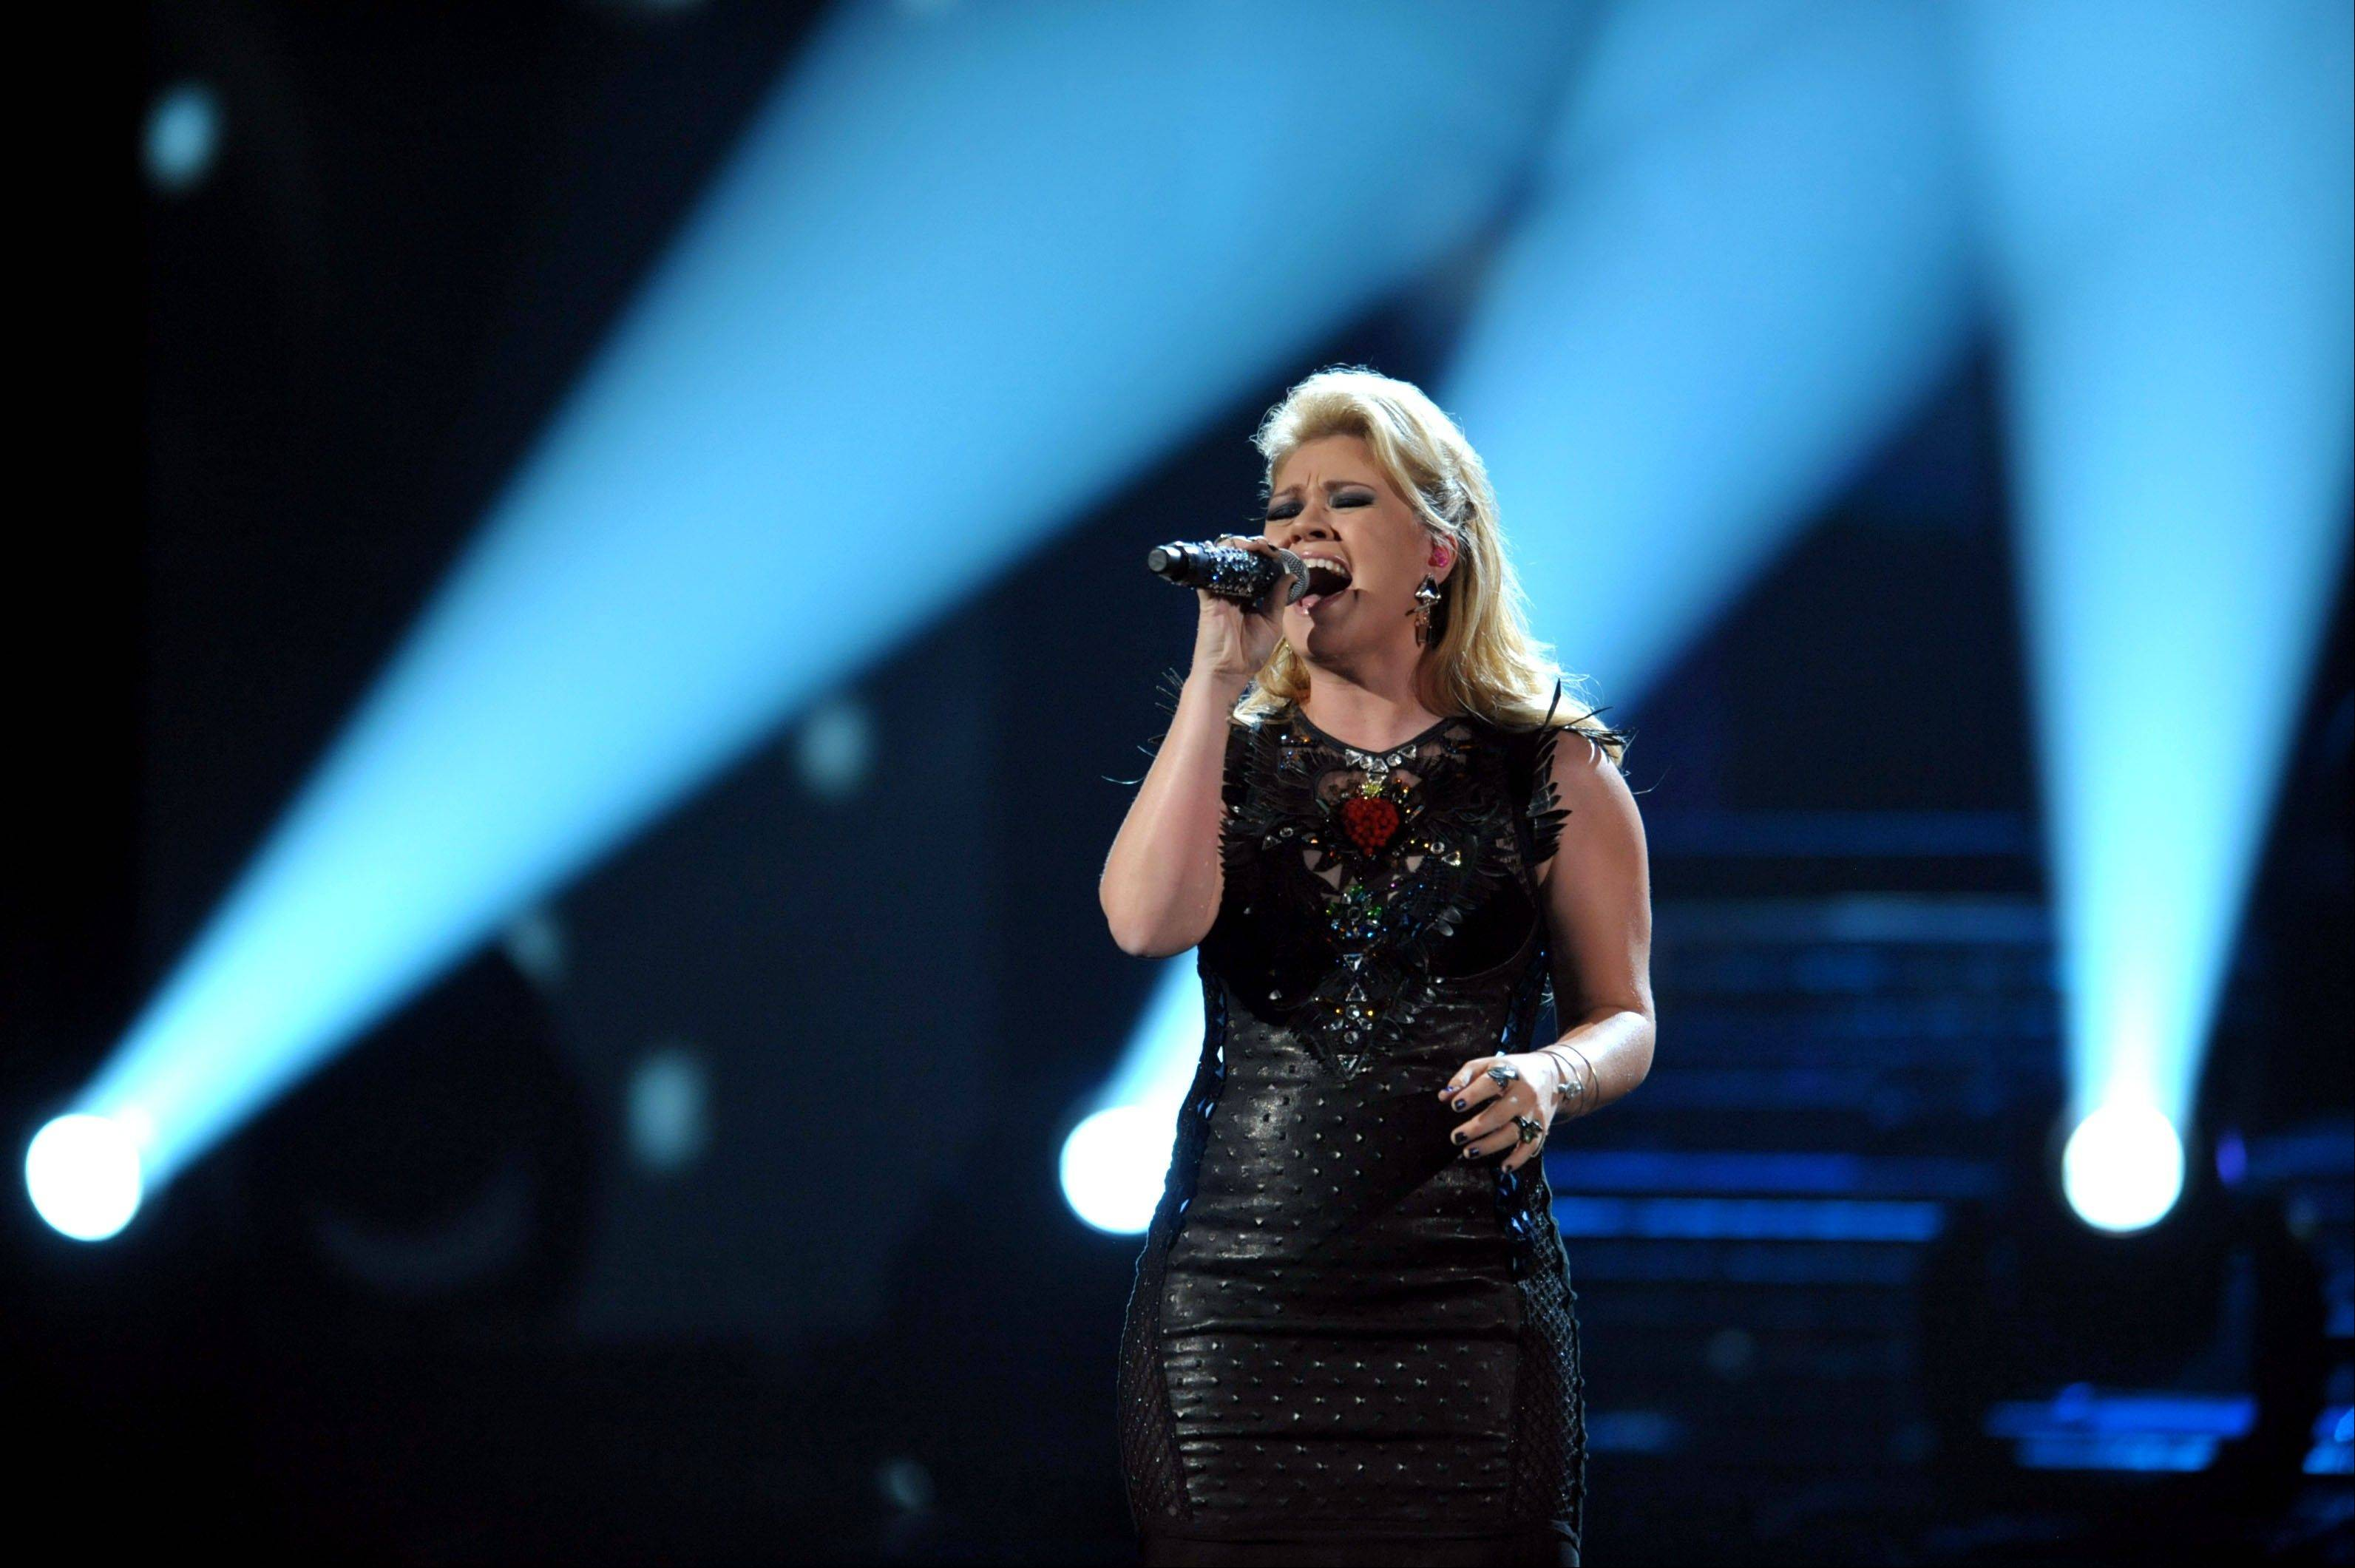 Kelly Clarkson fun. are just two of the acts who will perform during the upcoming inaugural festivities, which also includes Beyoncé, James Taylor, Stevie Wonder, Katy Perry and dozens of others.